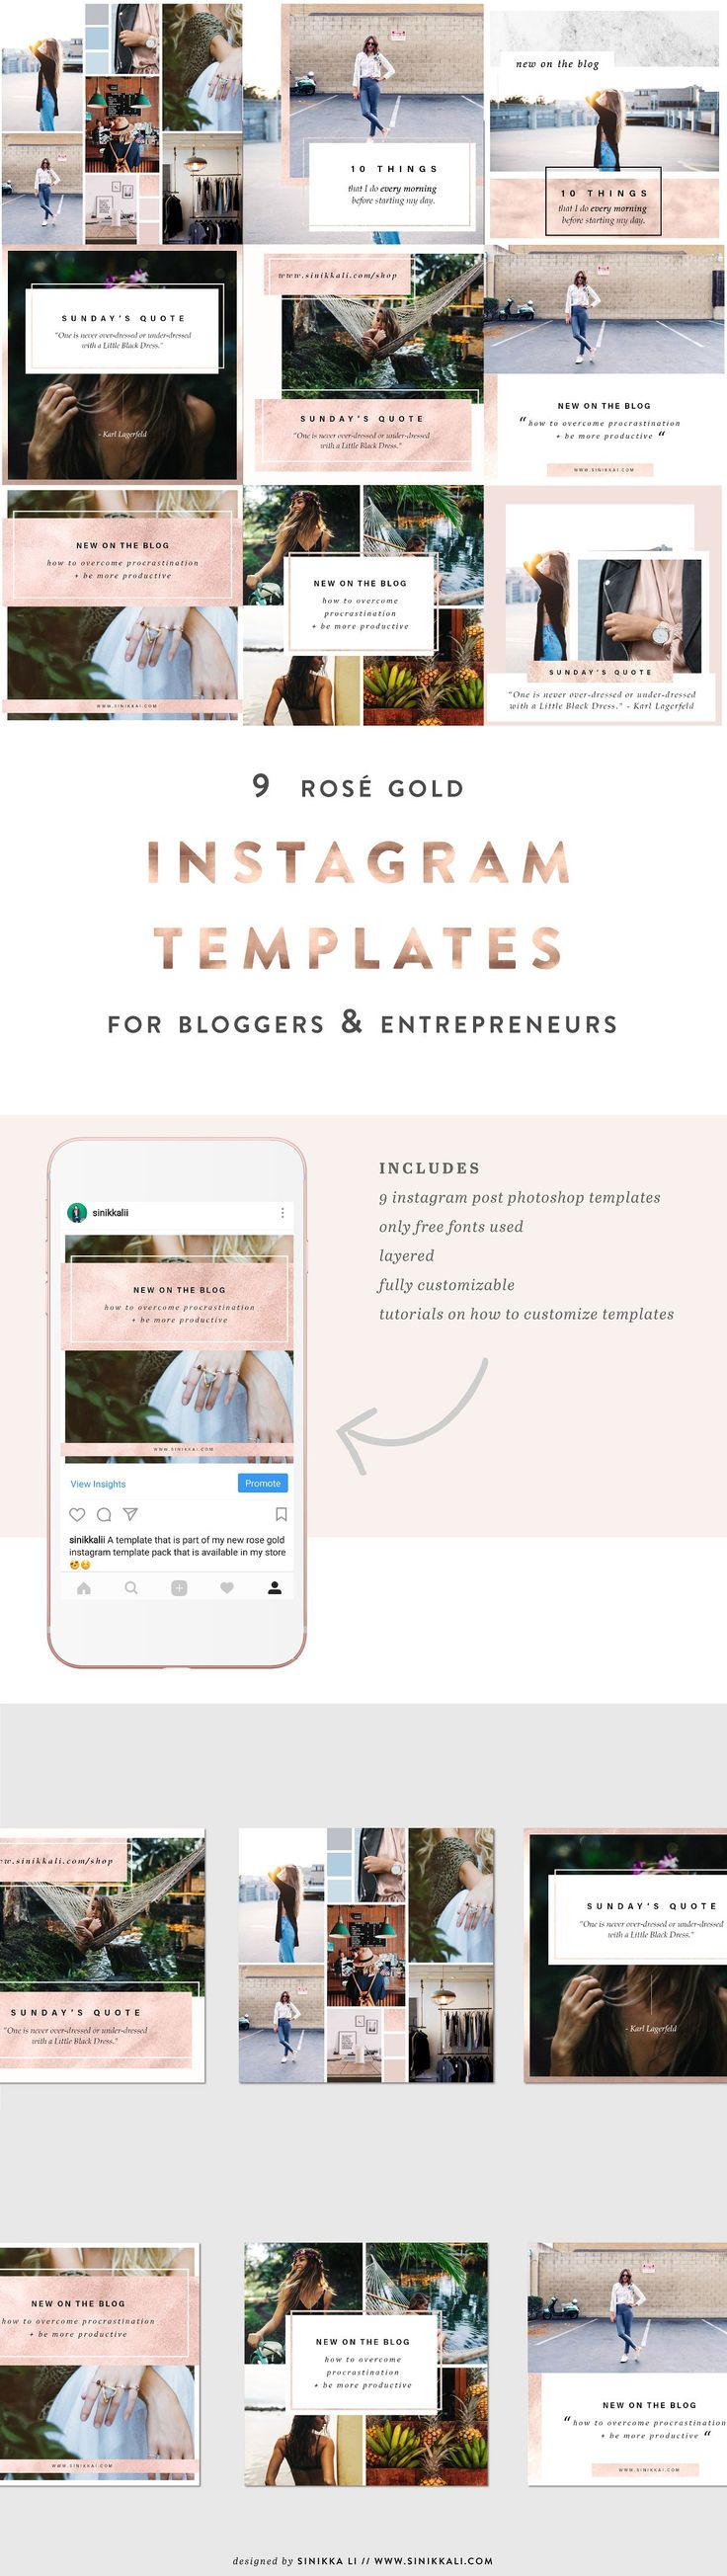 9 Rose Gold Instagram PSD Templates by Sinikka Li on @creativemarket